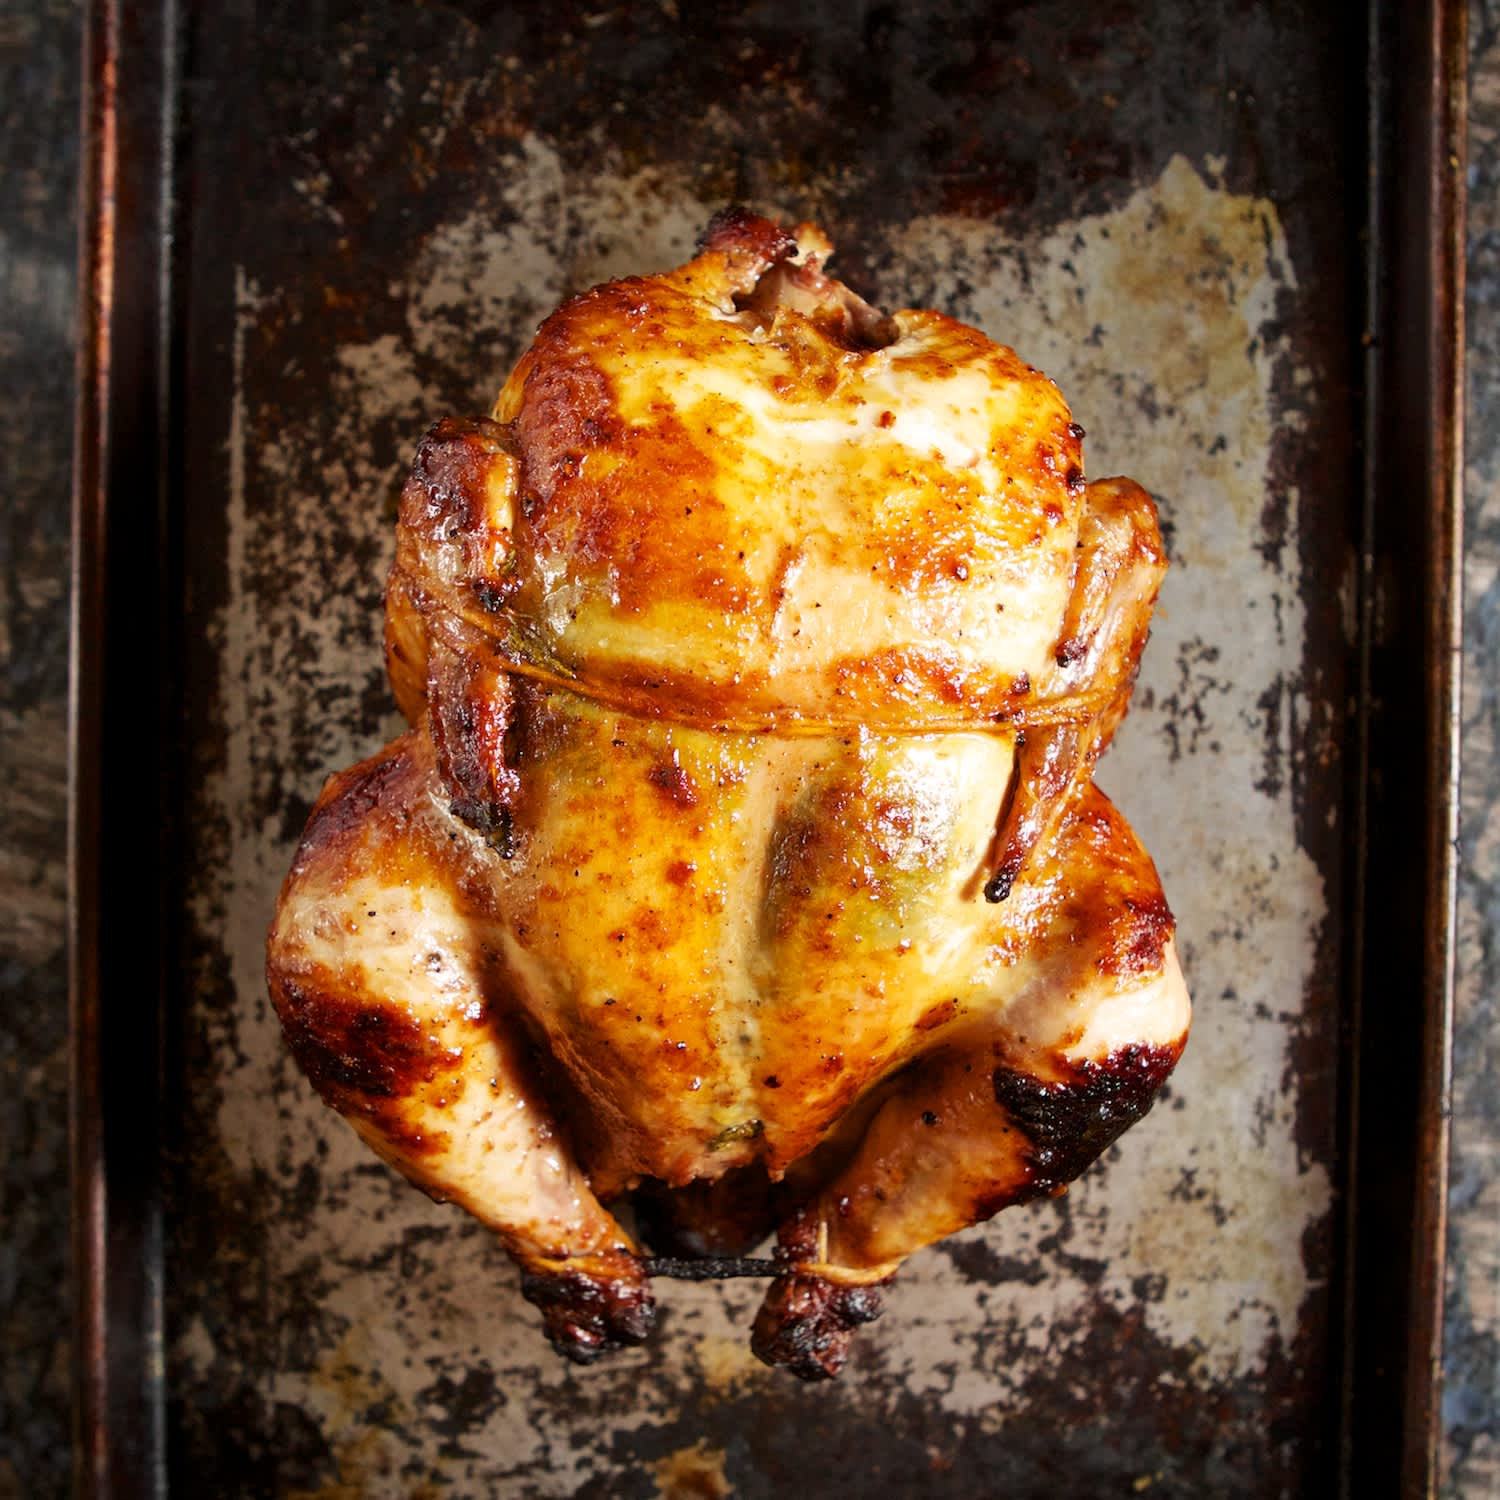 How To Cook a Crispy, Juicy Rotisserie Chicken on the Grill